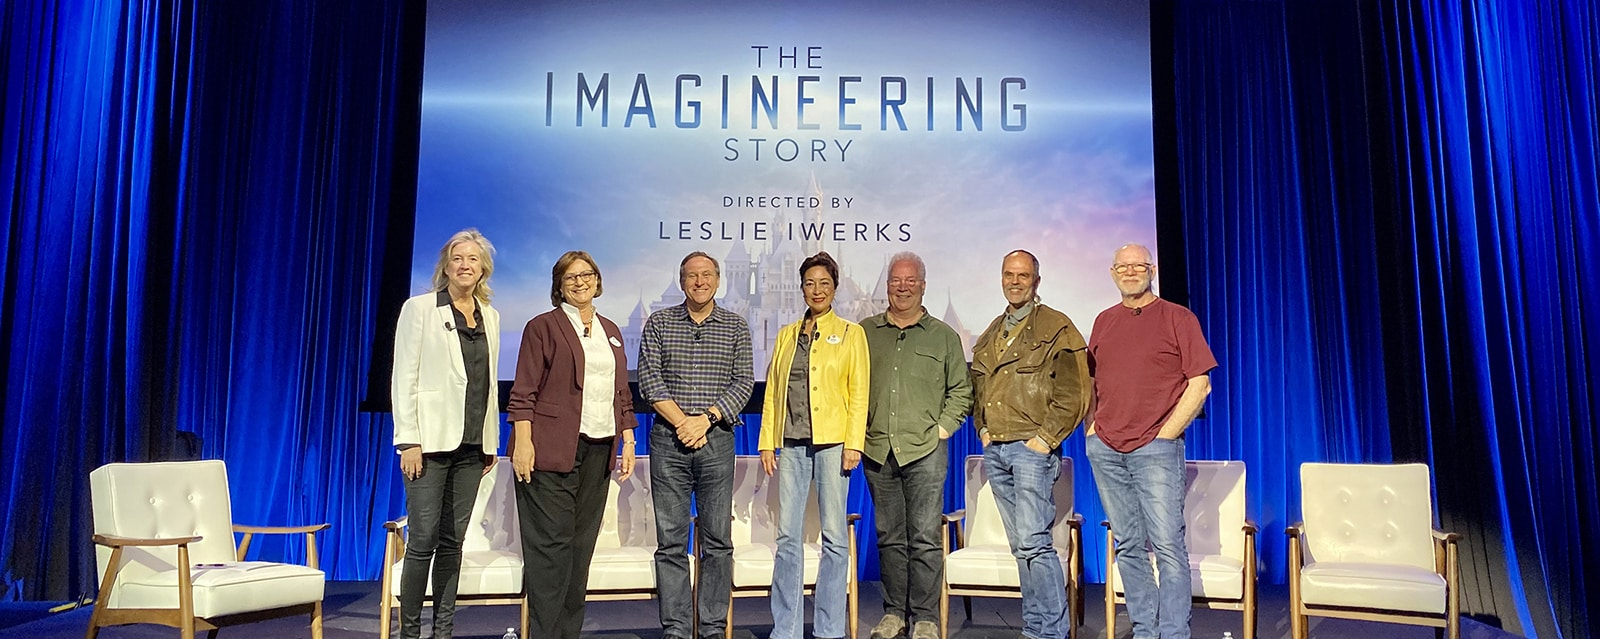 Director Leslie Iwerks and featured Imagineers